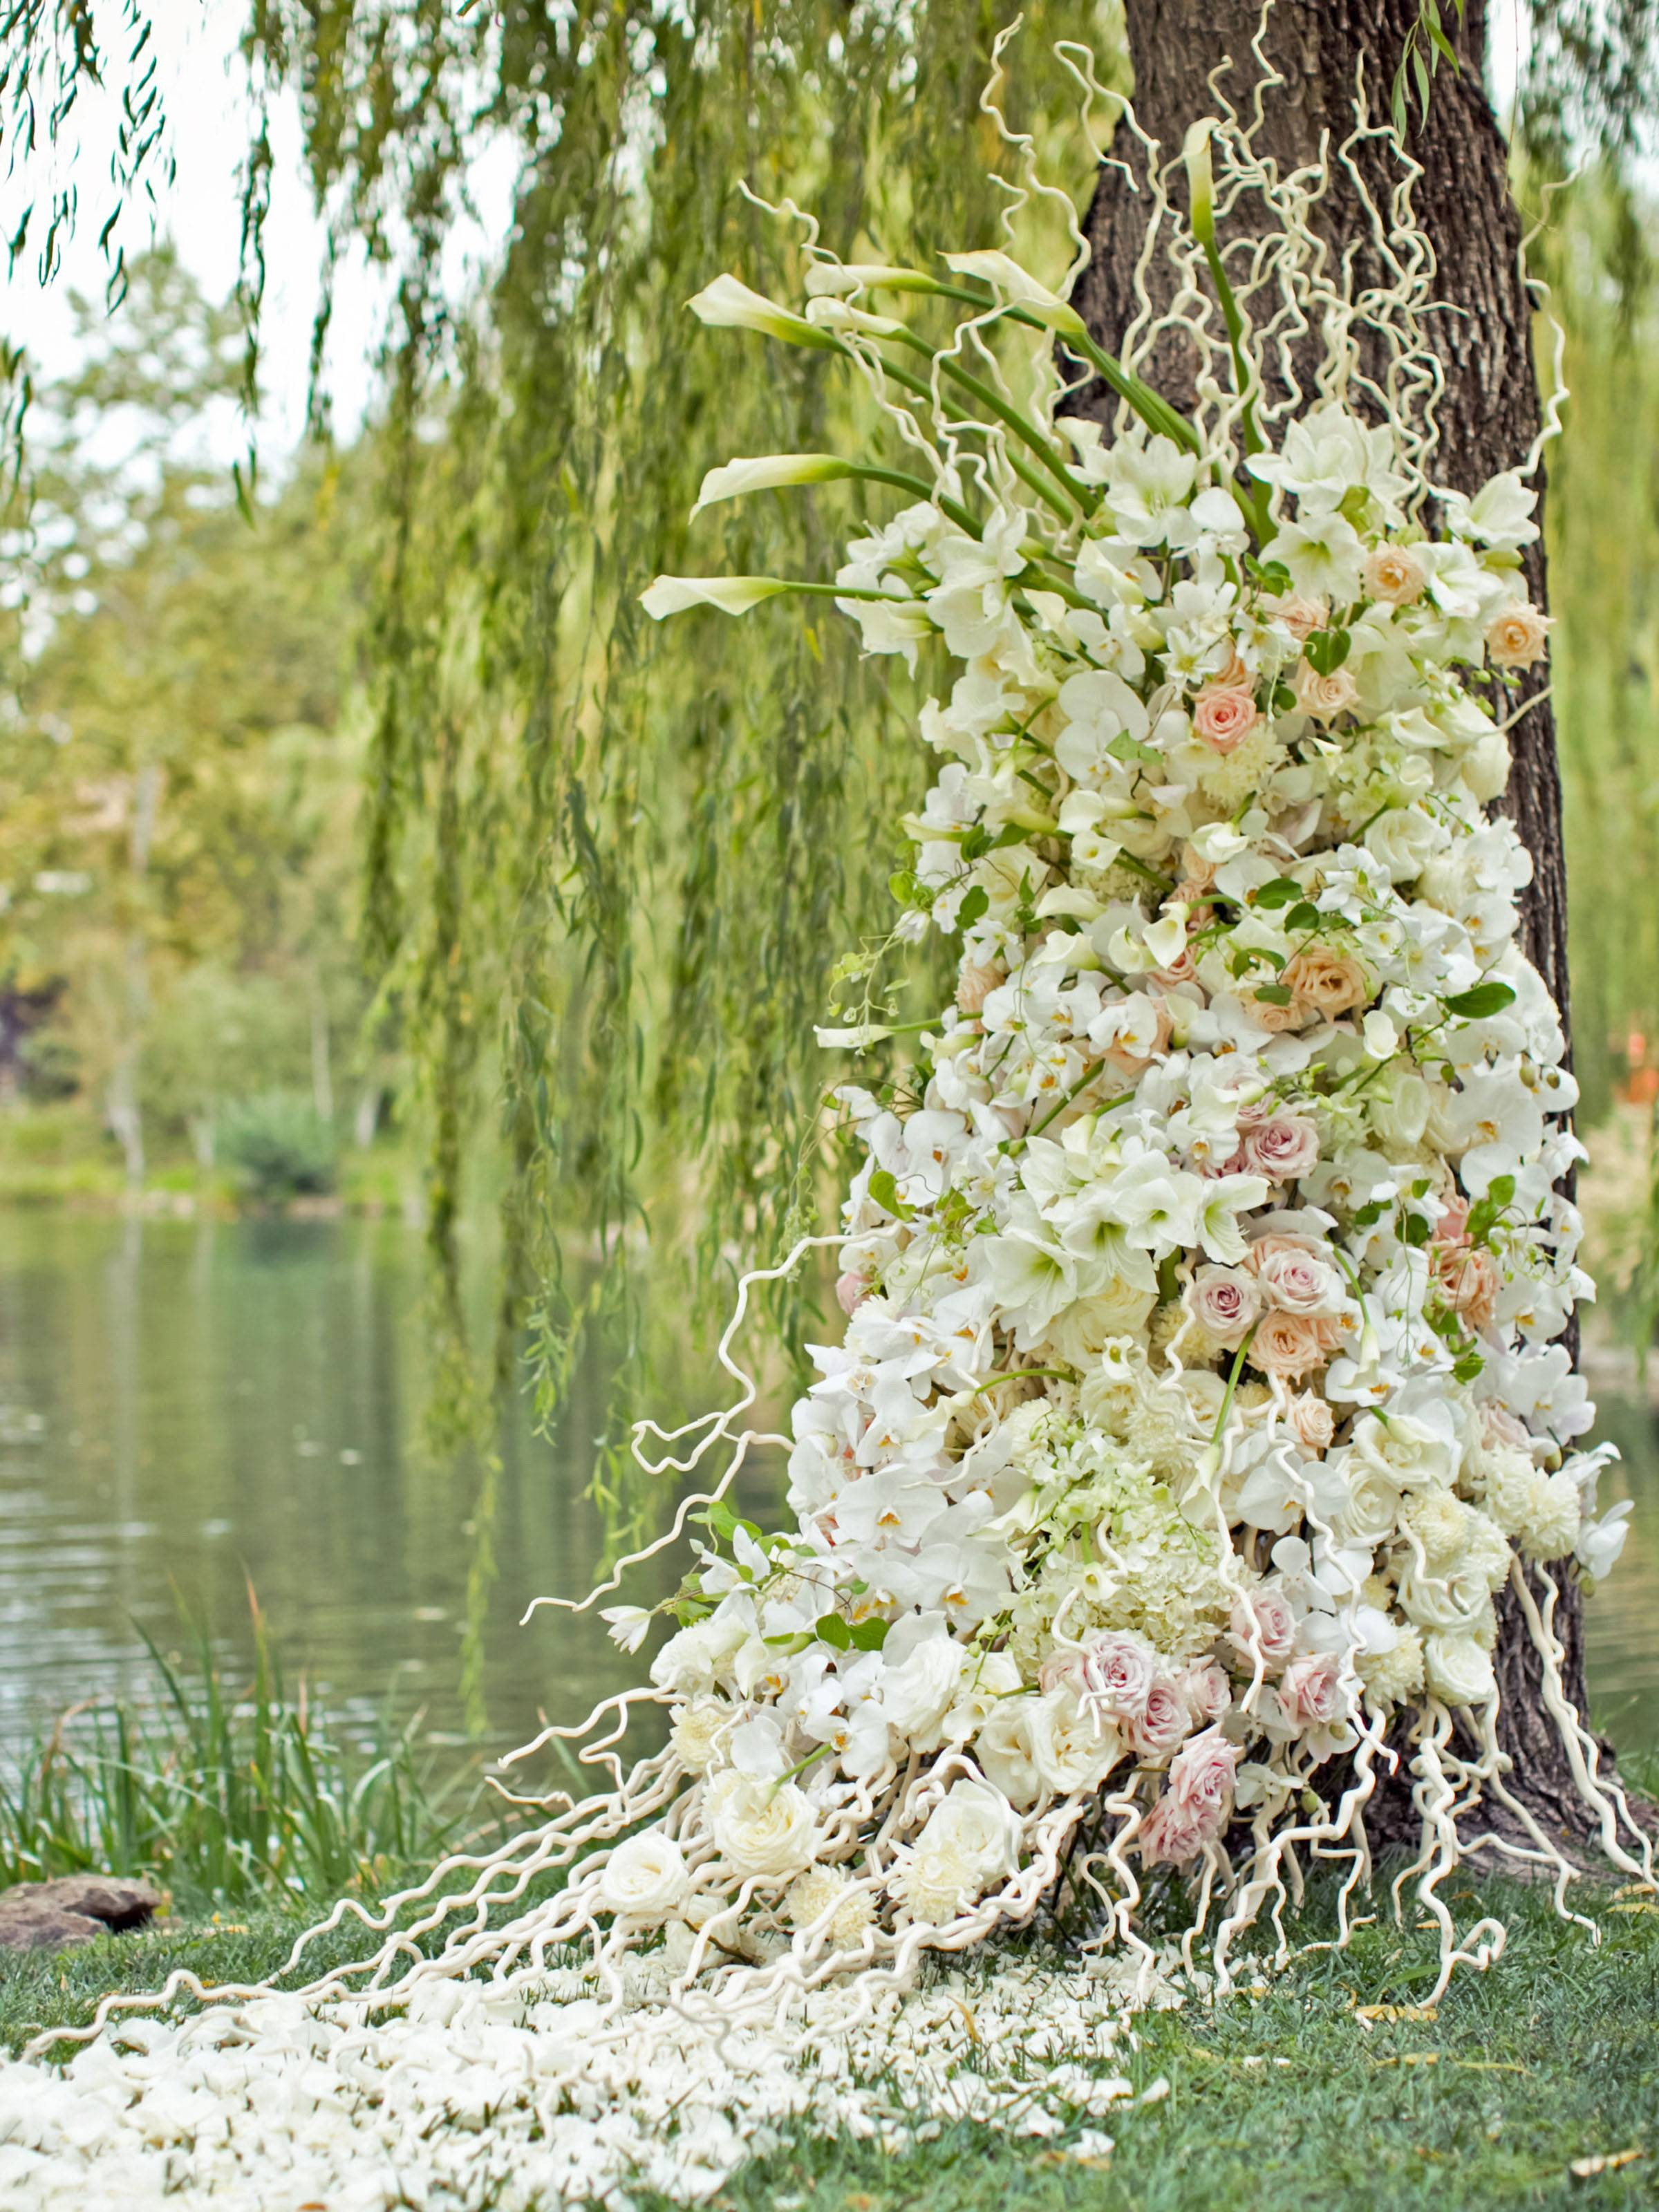 Lush white, blush and peach florals winding up a tree trunk